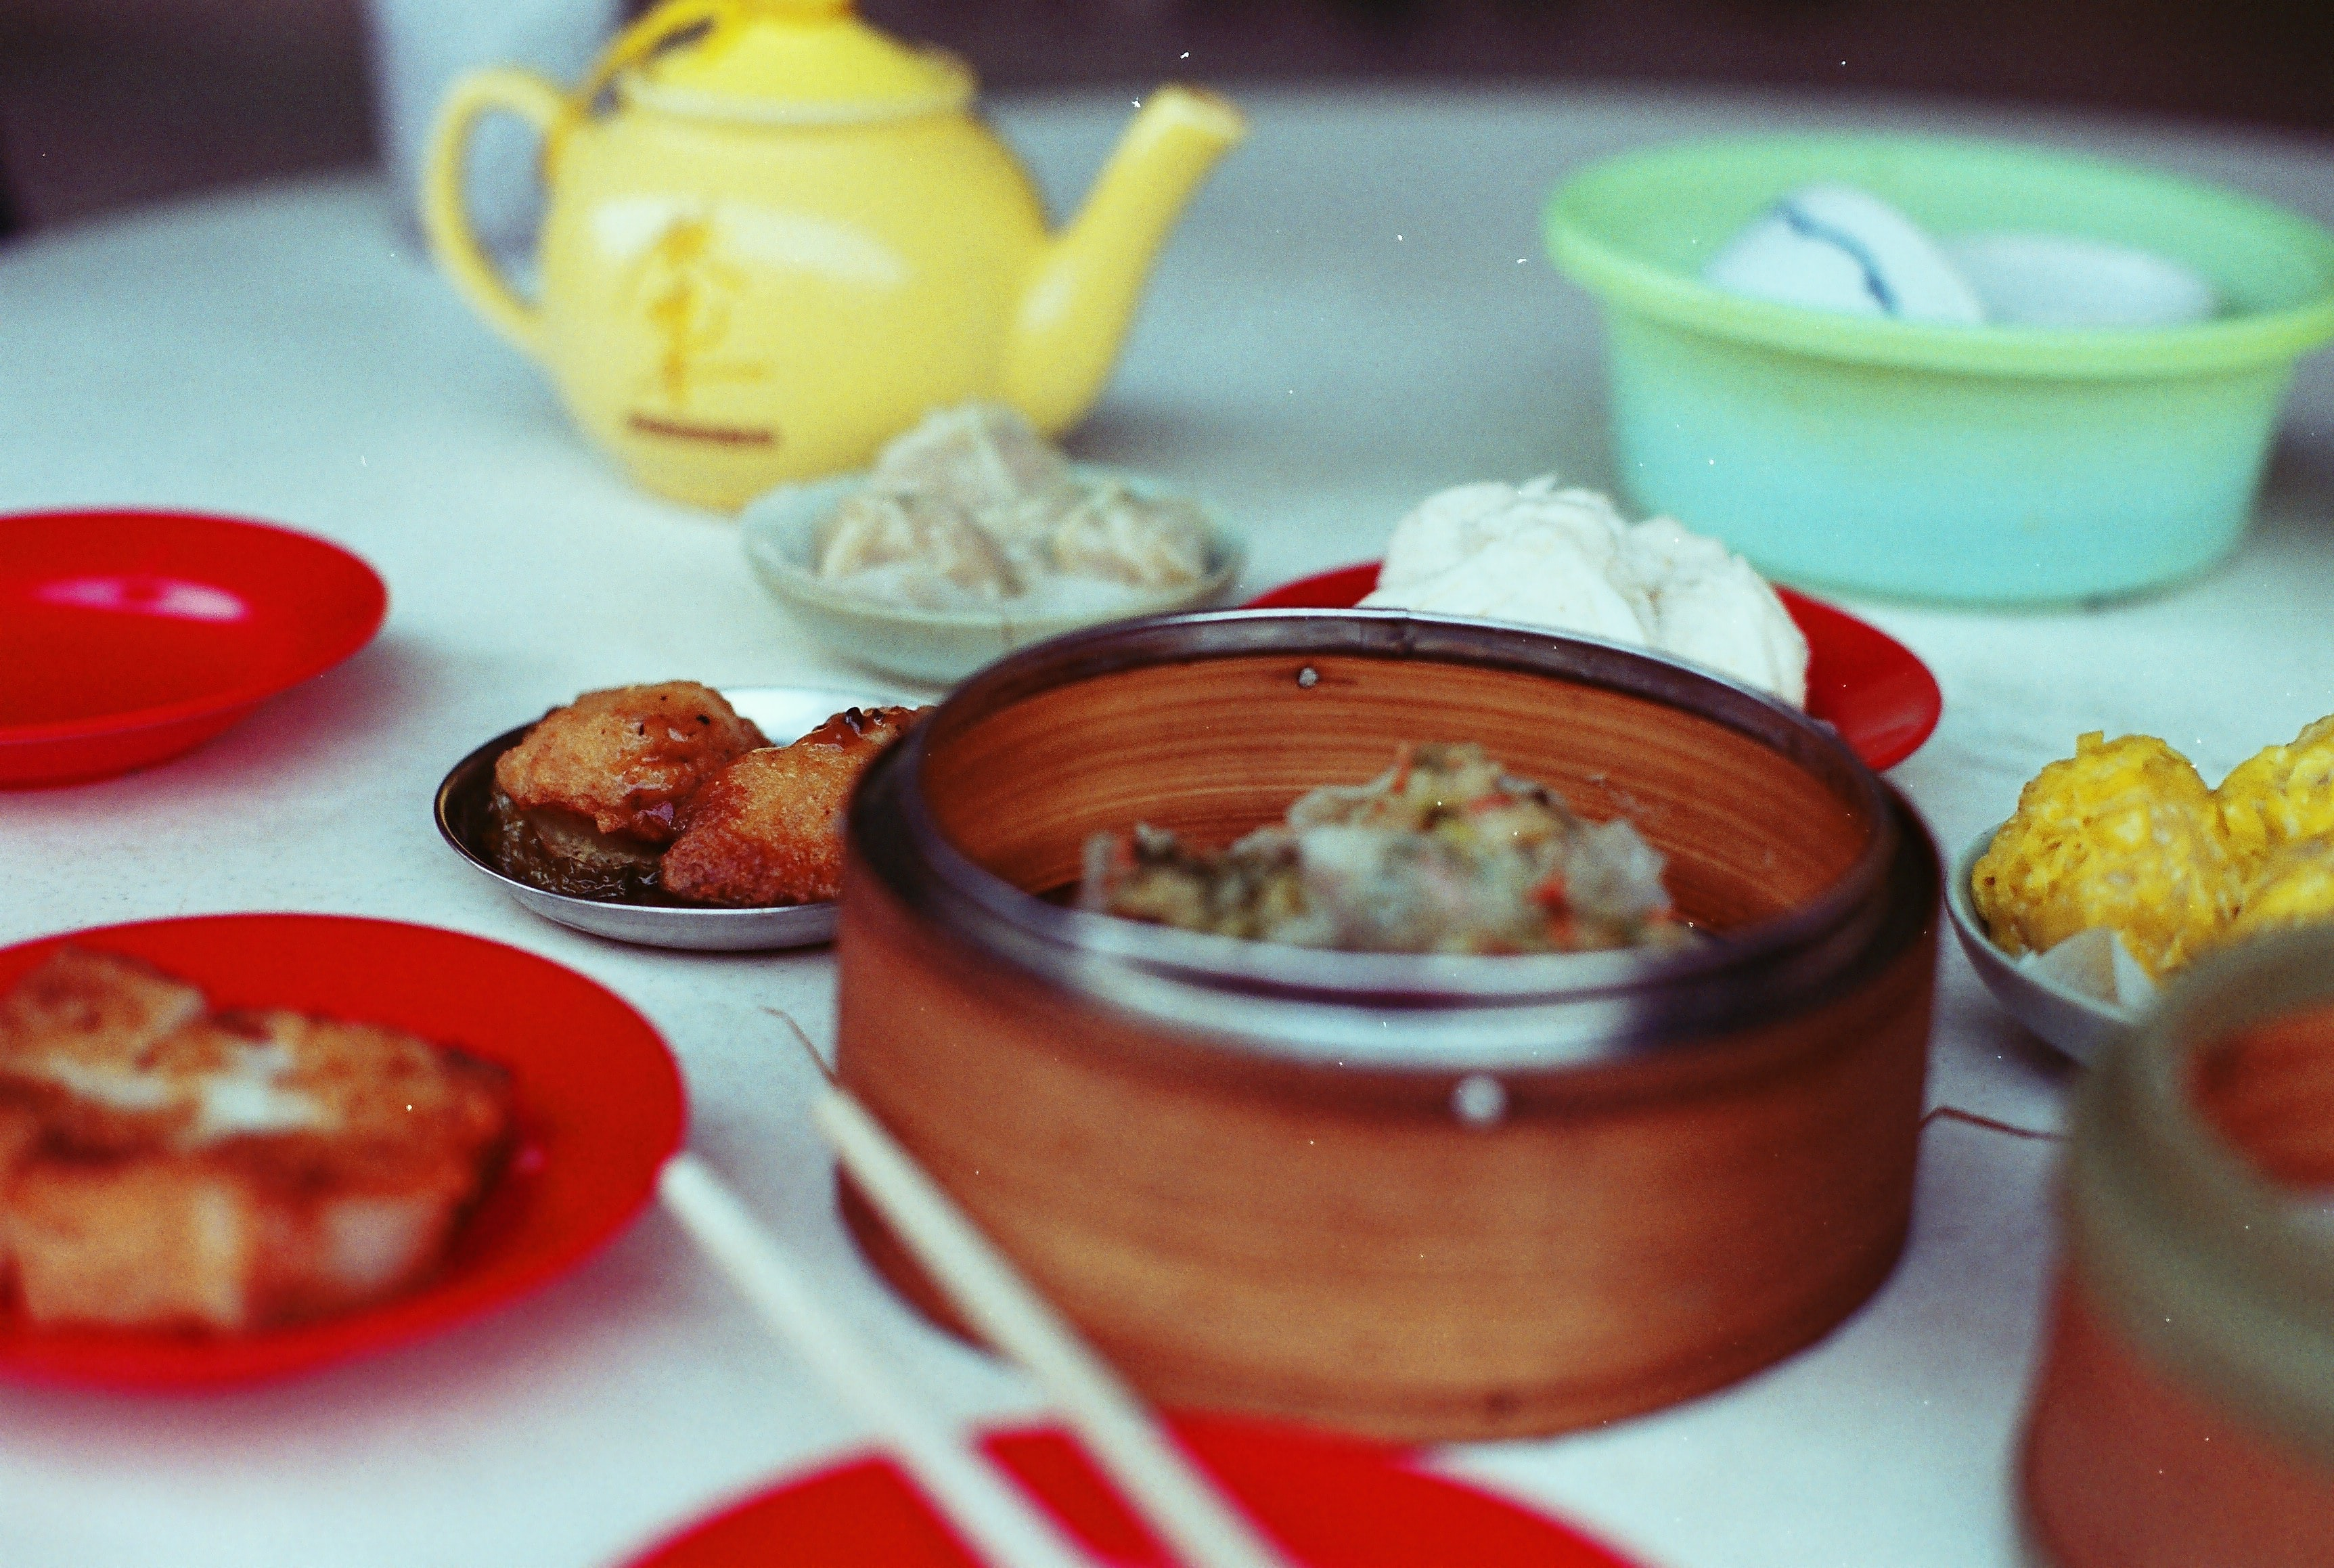 Chinese dim sum with dumplings and tea at a kitchen table